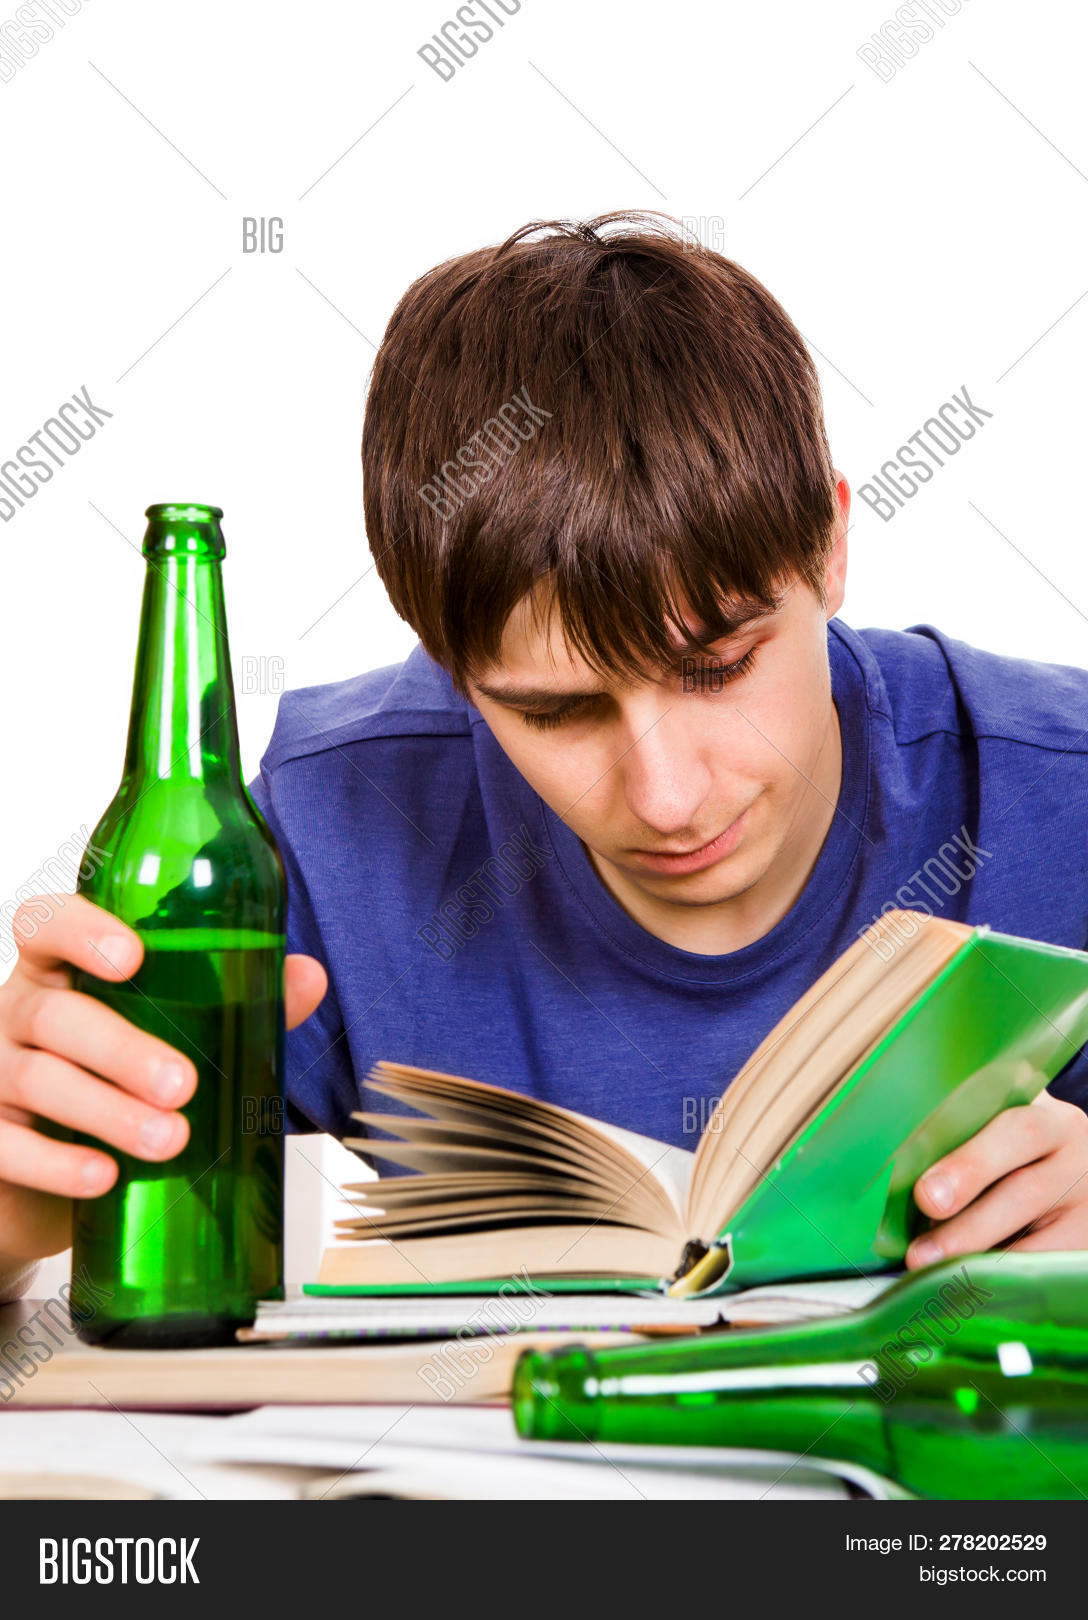 Student Beer Read Book Image Photo Free Trial Bigstock